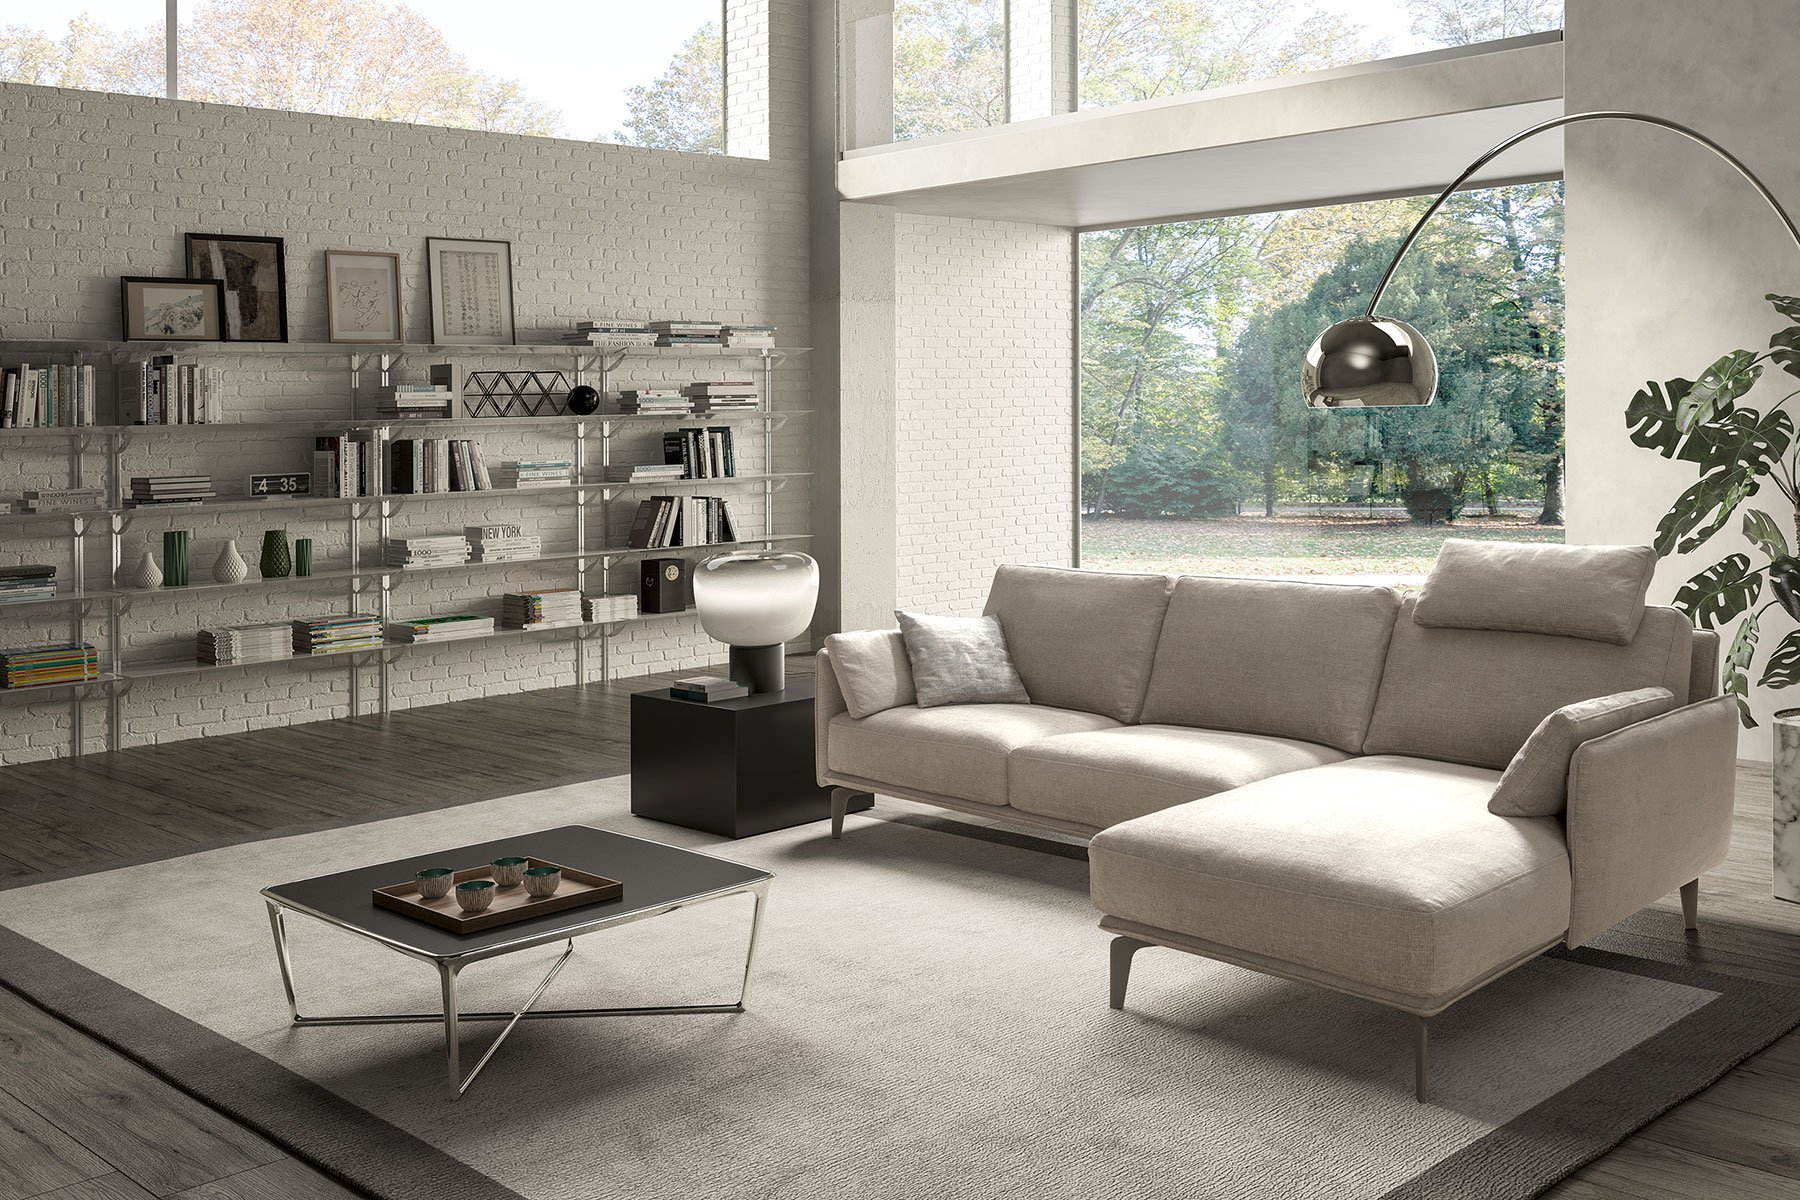 Beautiful cucine componibili firenze images ideas for Righi arredamenti